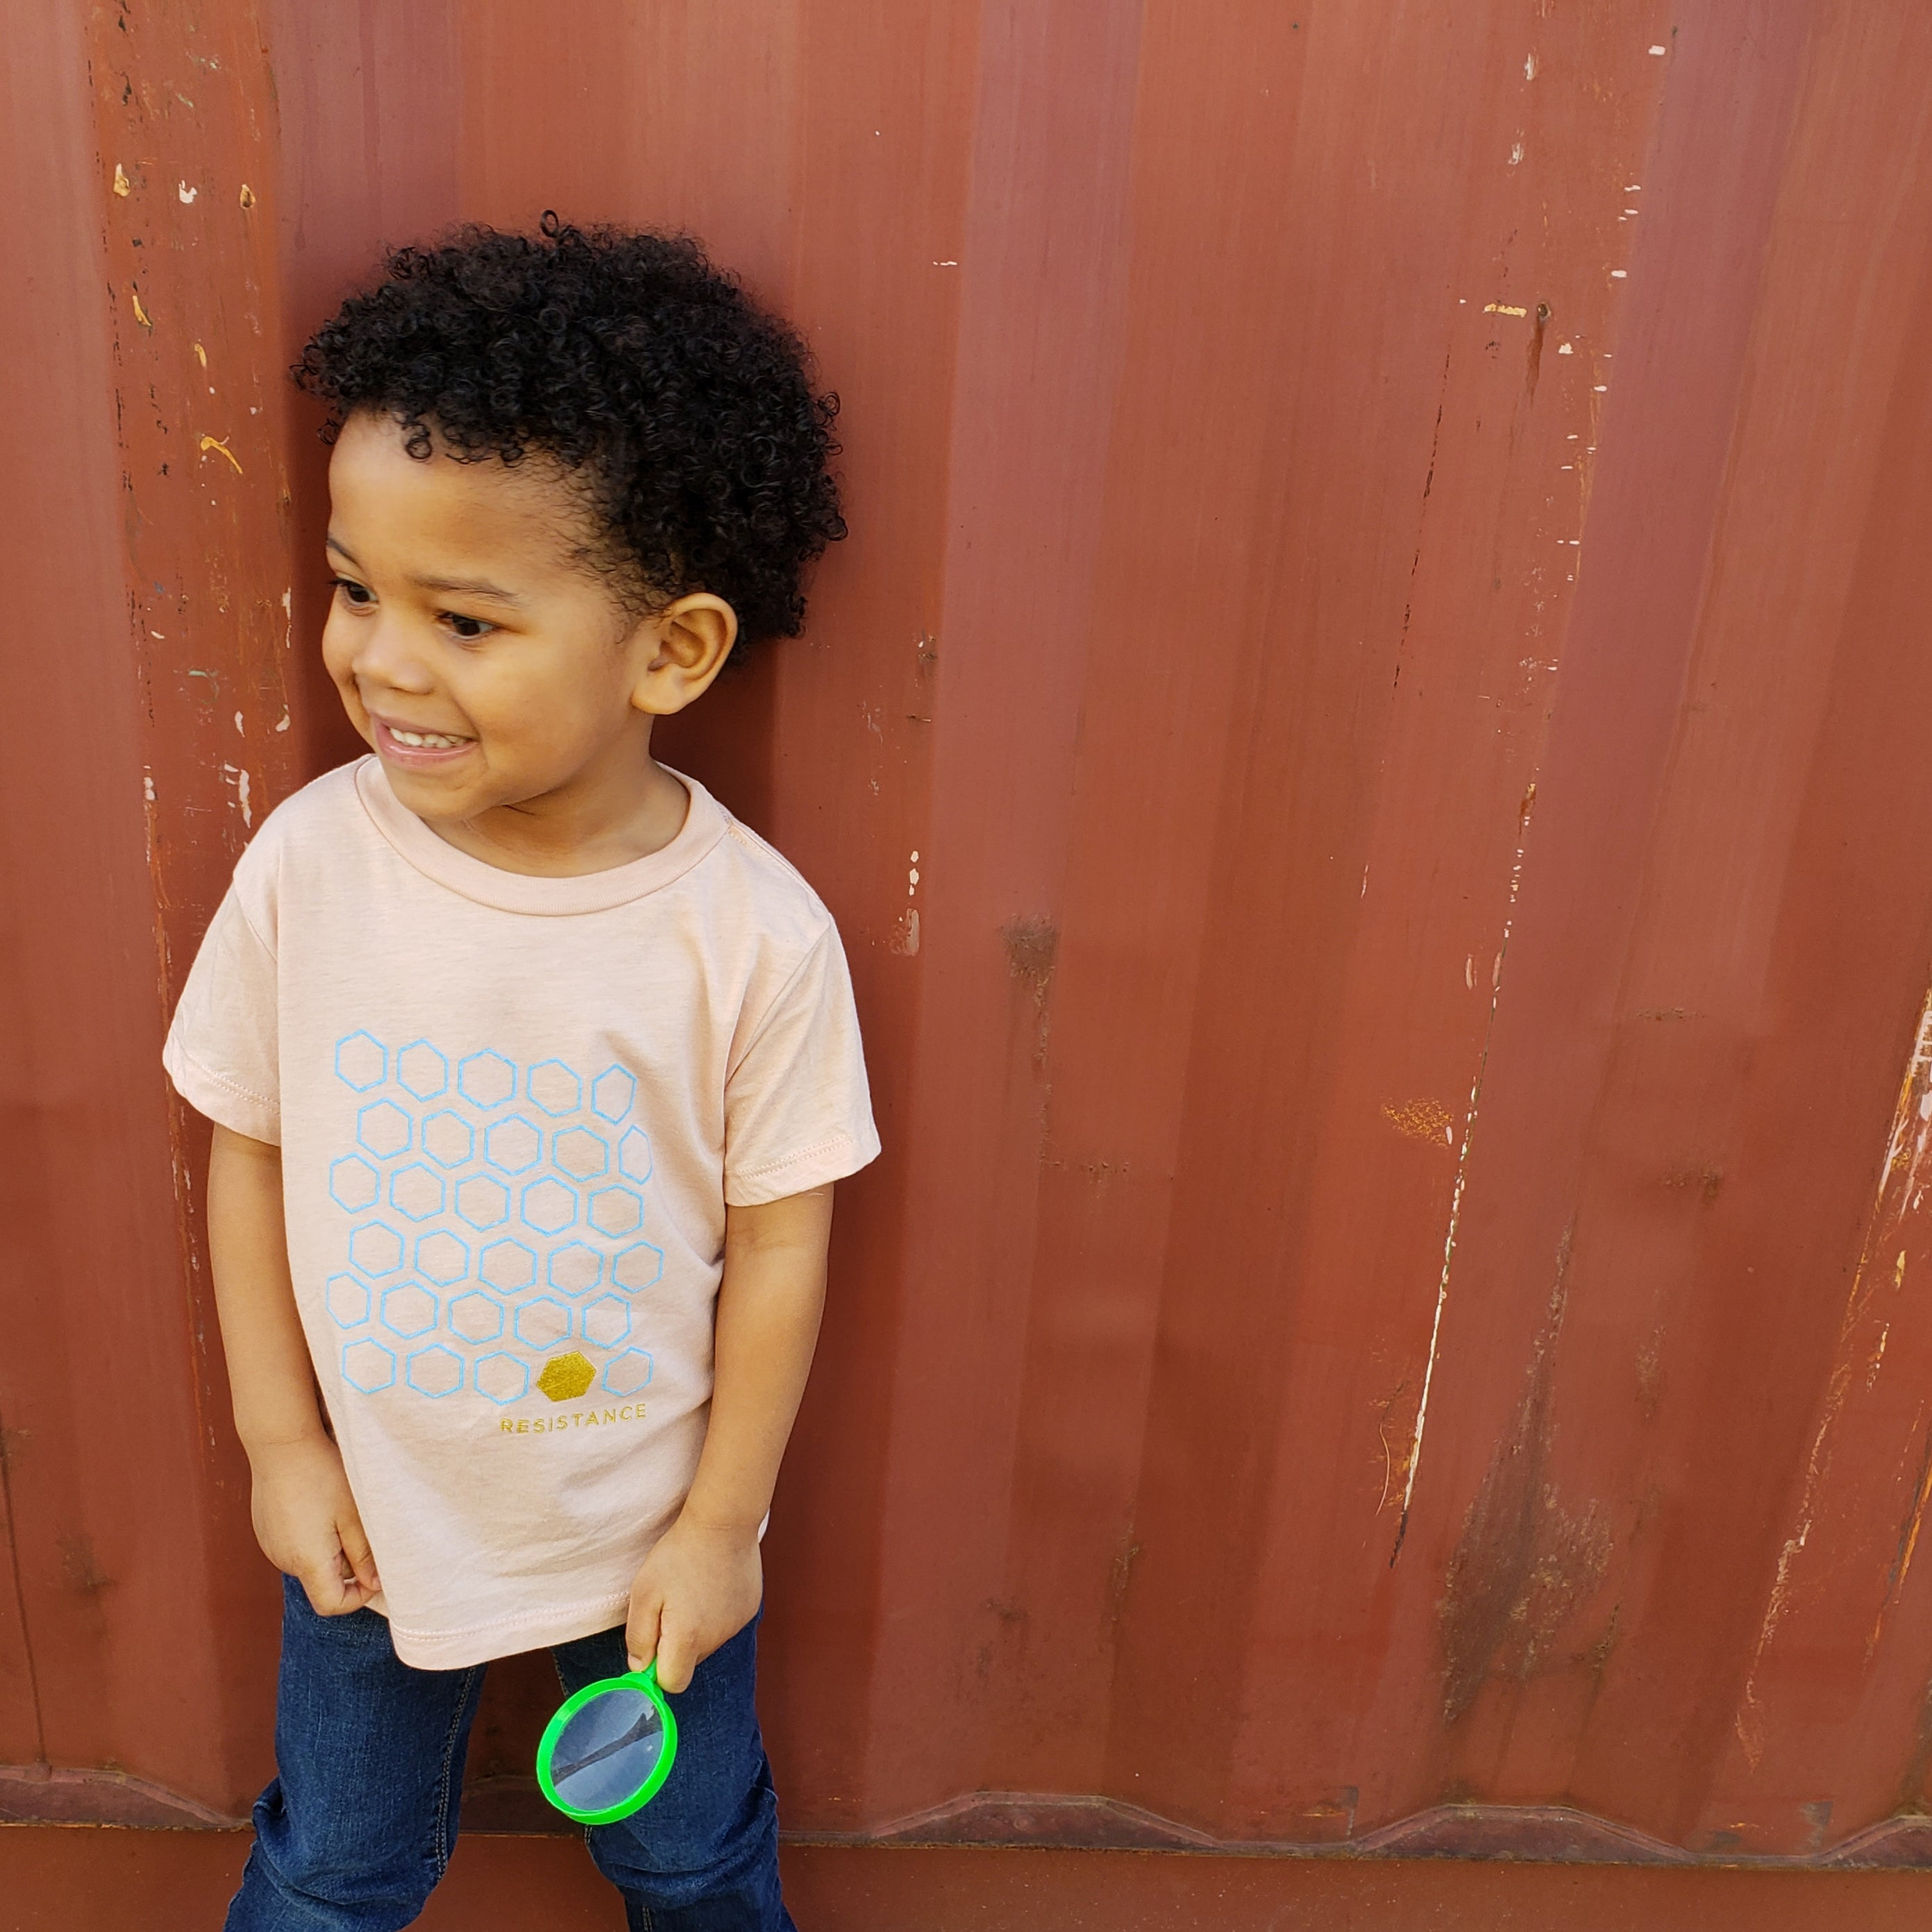 Resistance- Toddler Peach Tee